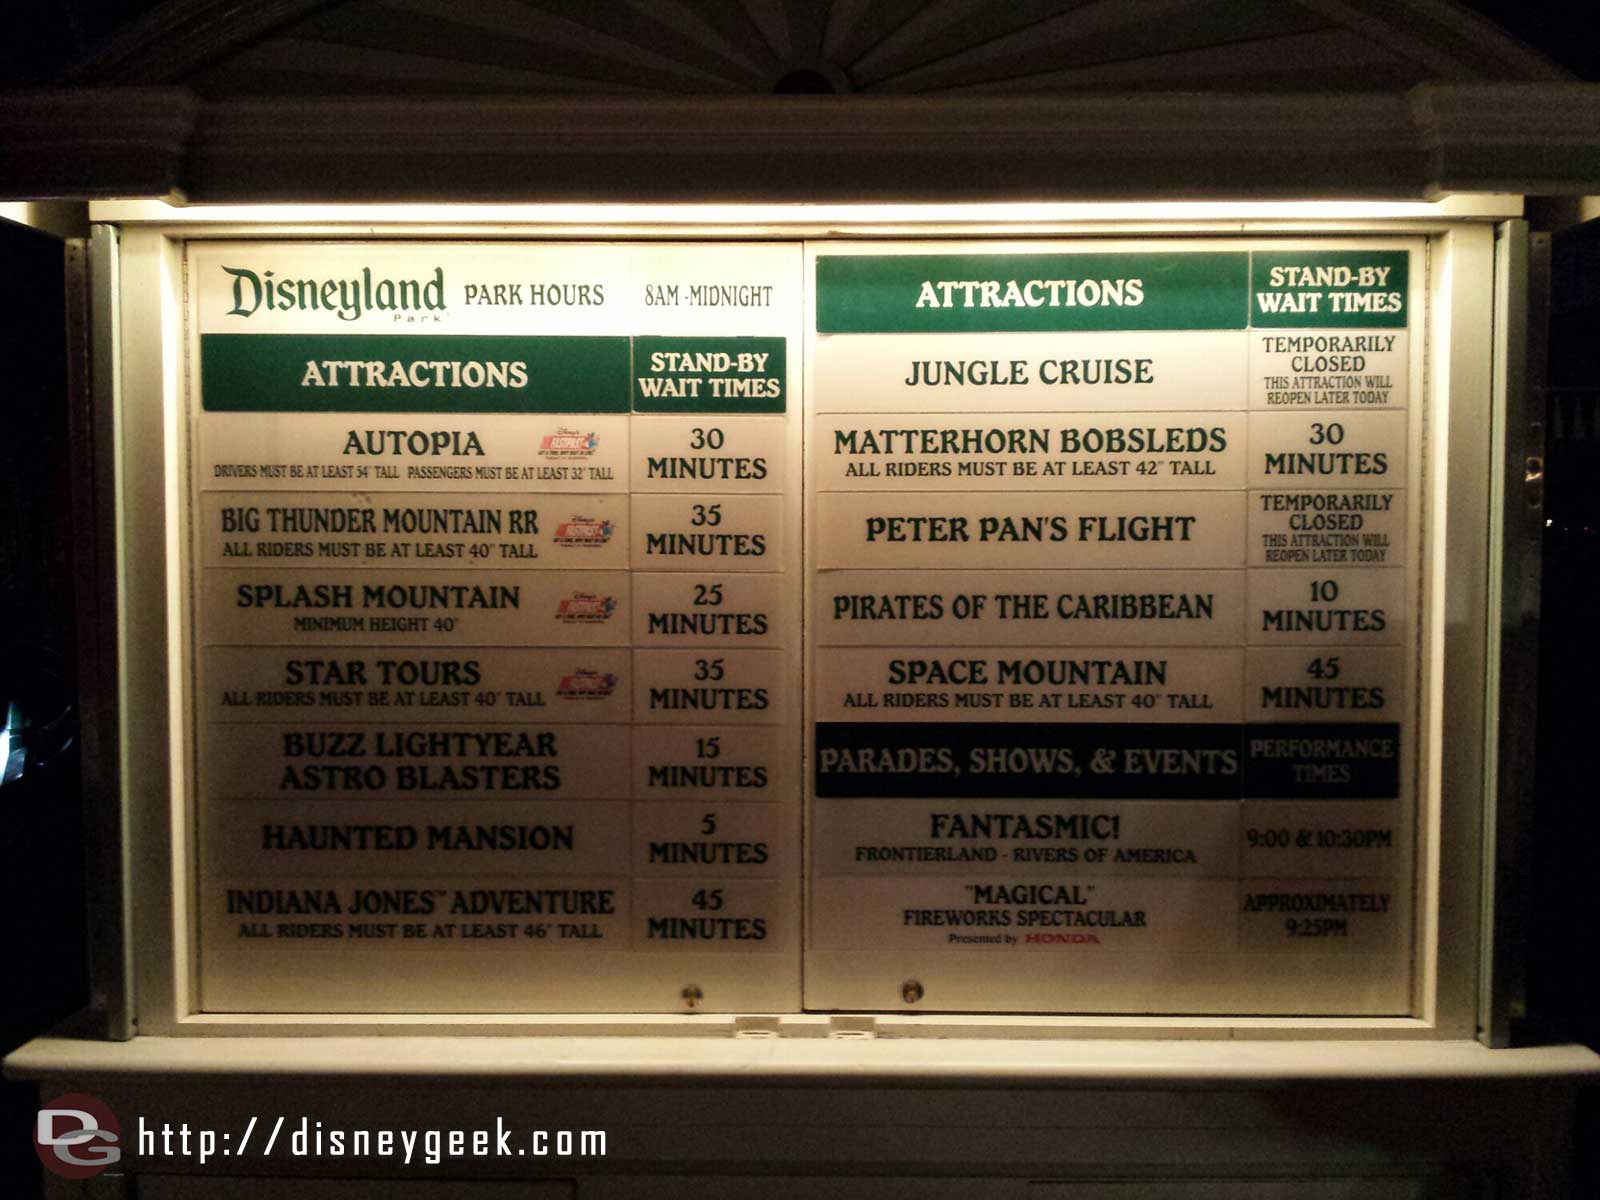 ##Disneyland wait times at 8:53pm